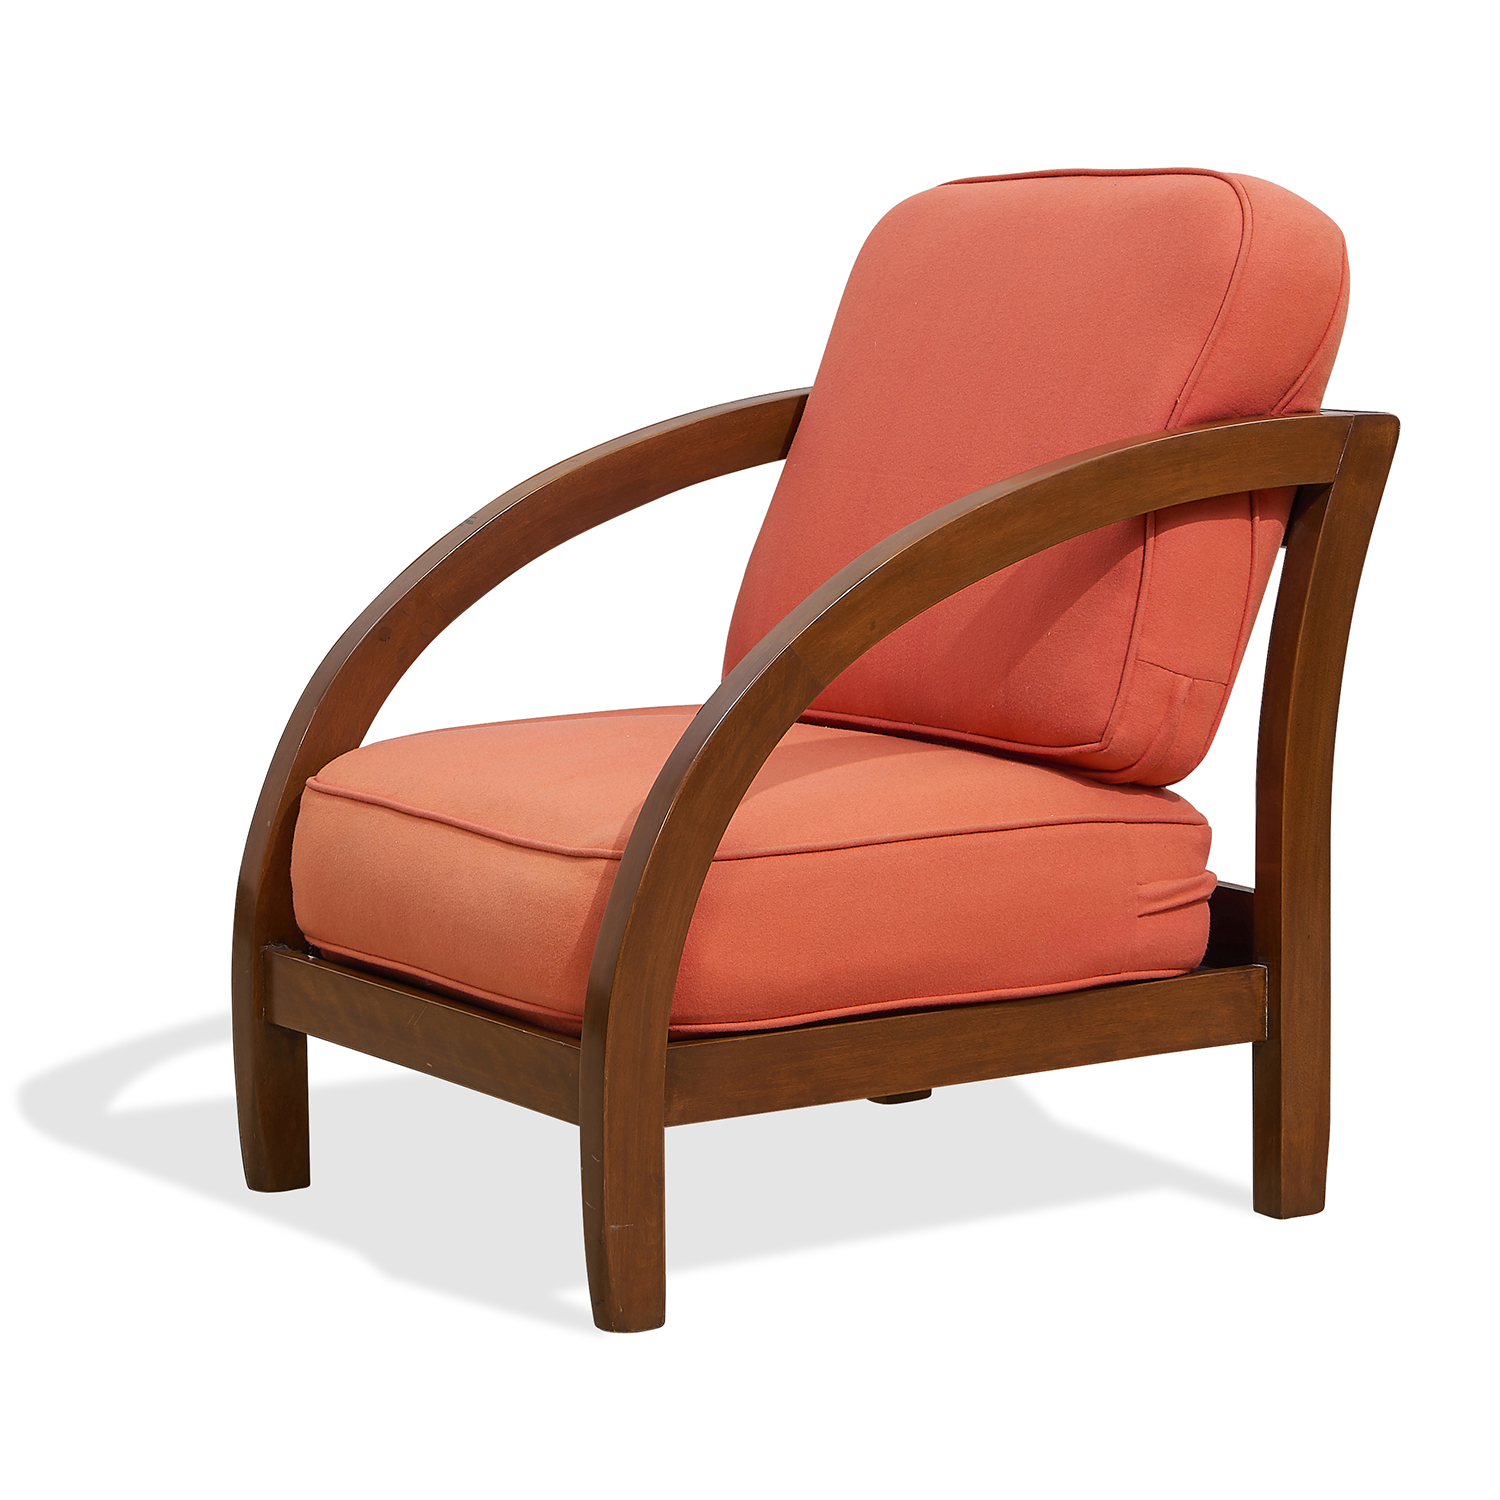 """Attributed to Paul Frankl (1886-1958) D lounge chair 24 1/4""""w x 31""""d x 27""""h"""